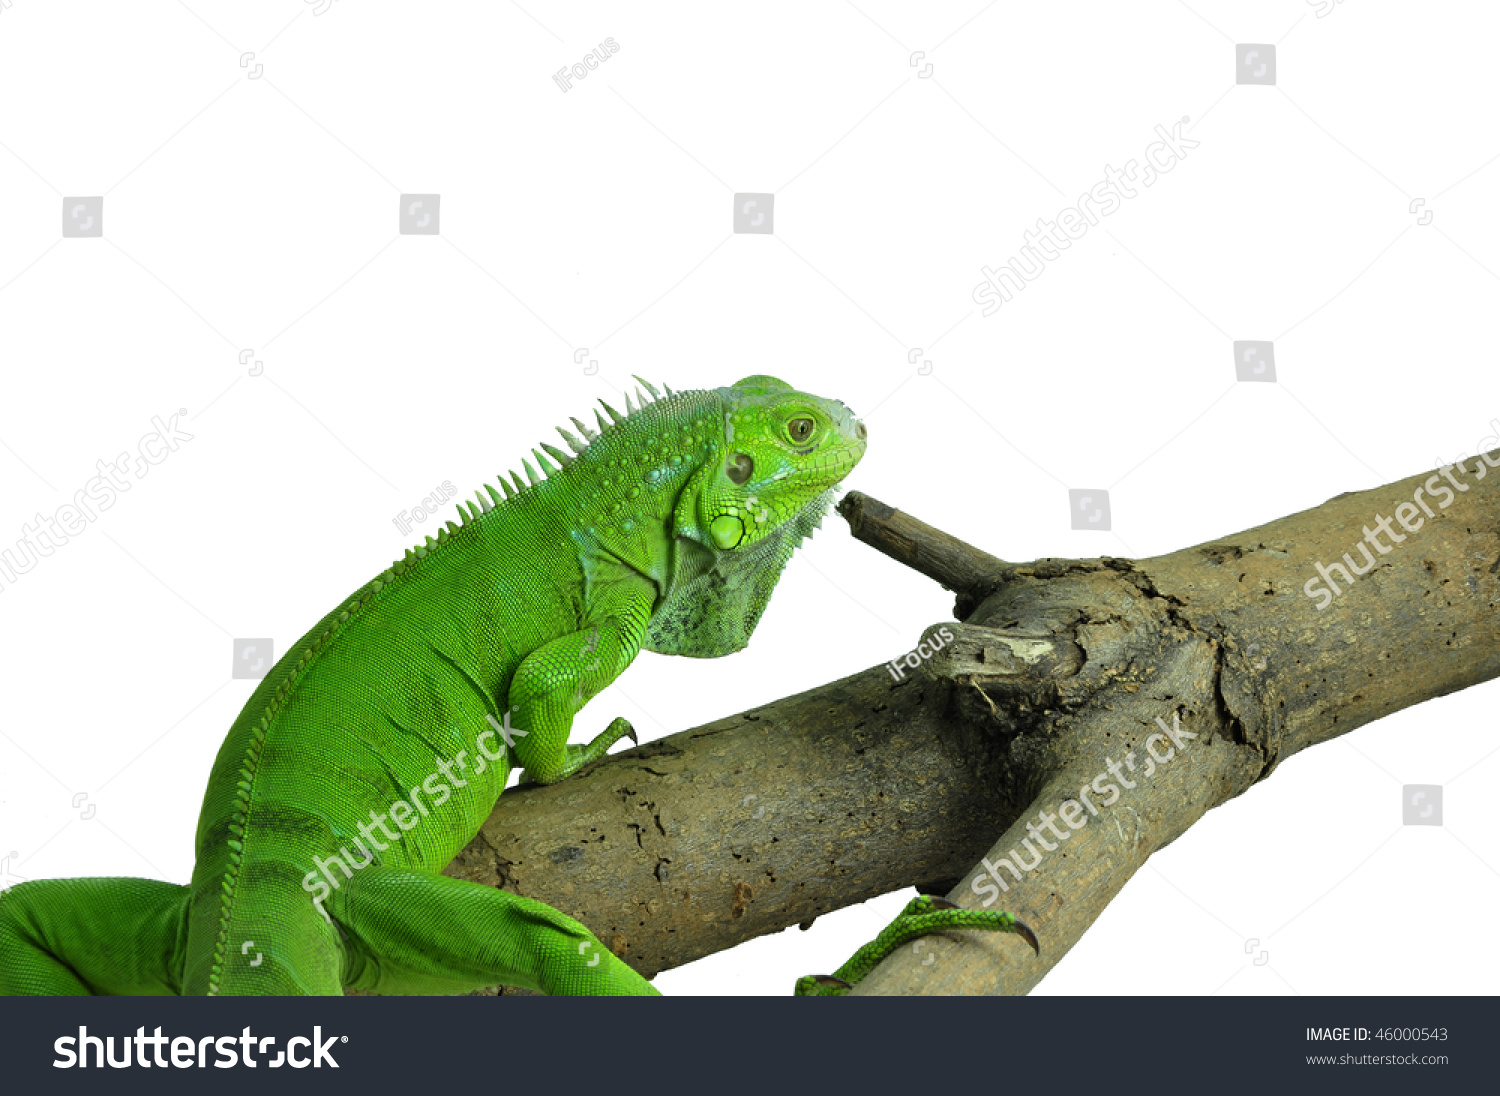 Isolated photo of a green iguana on a branch